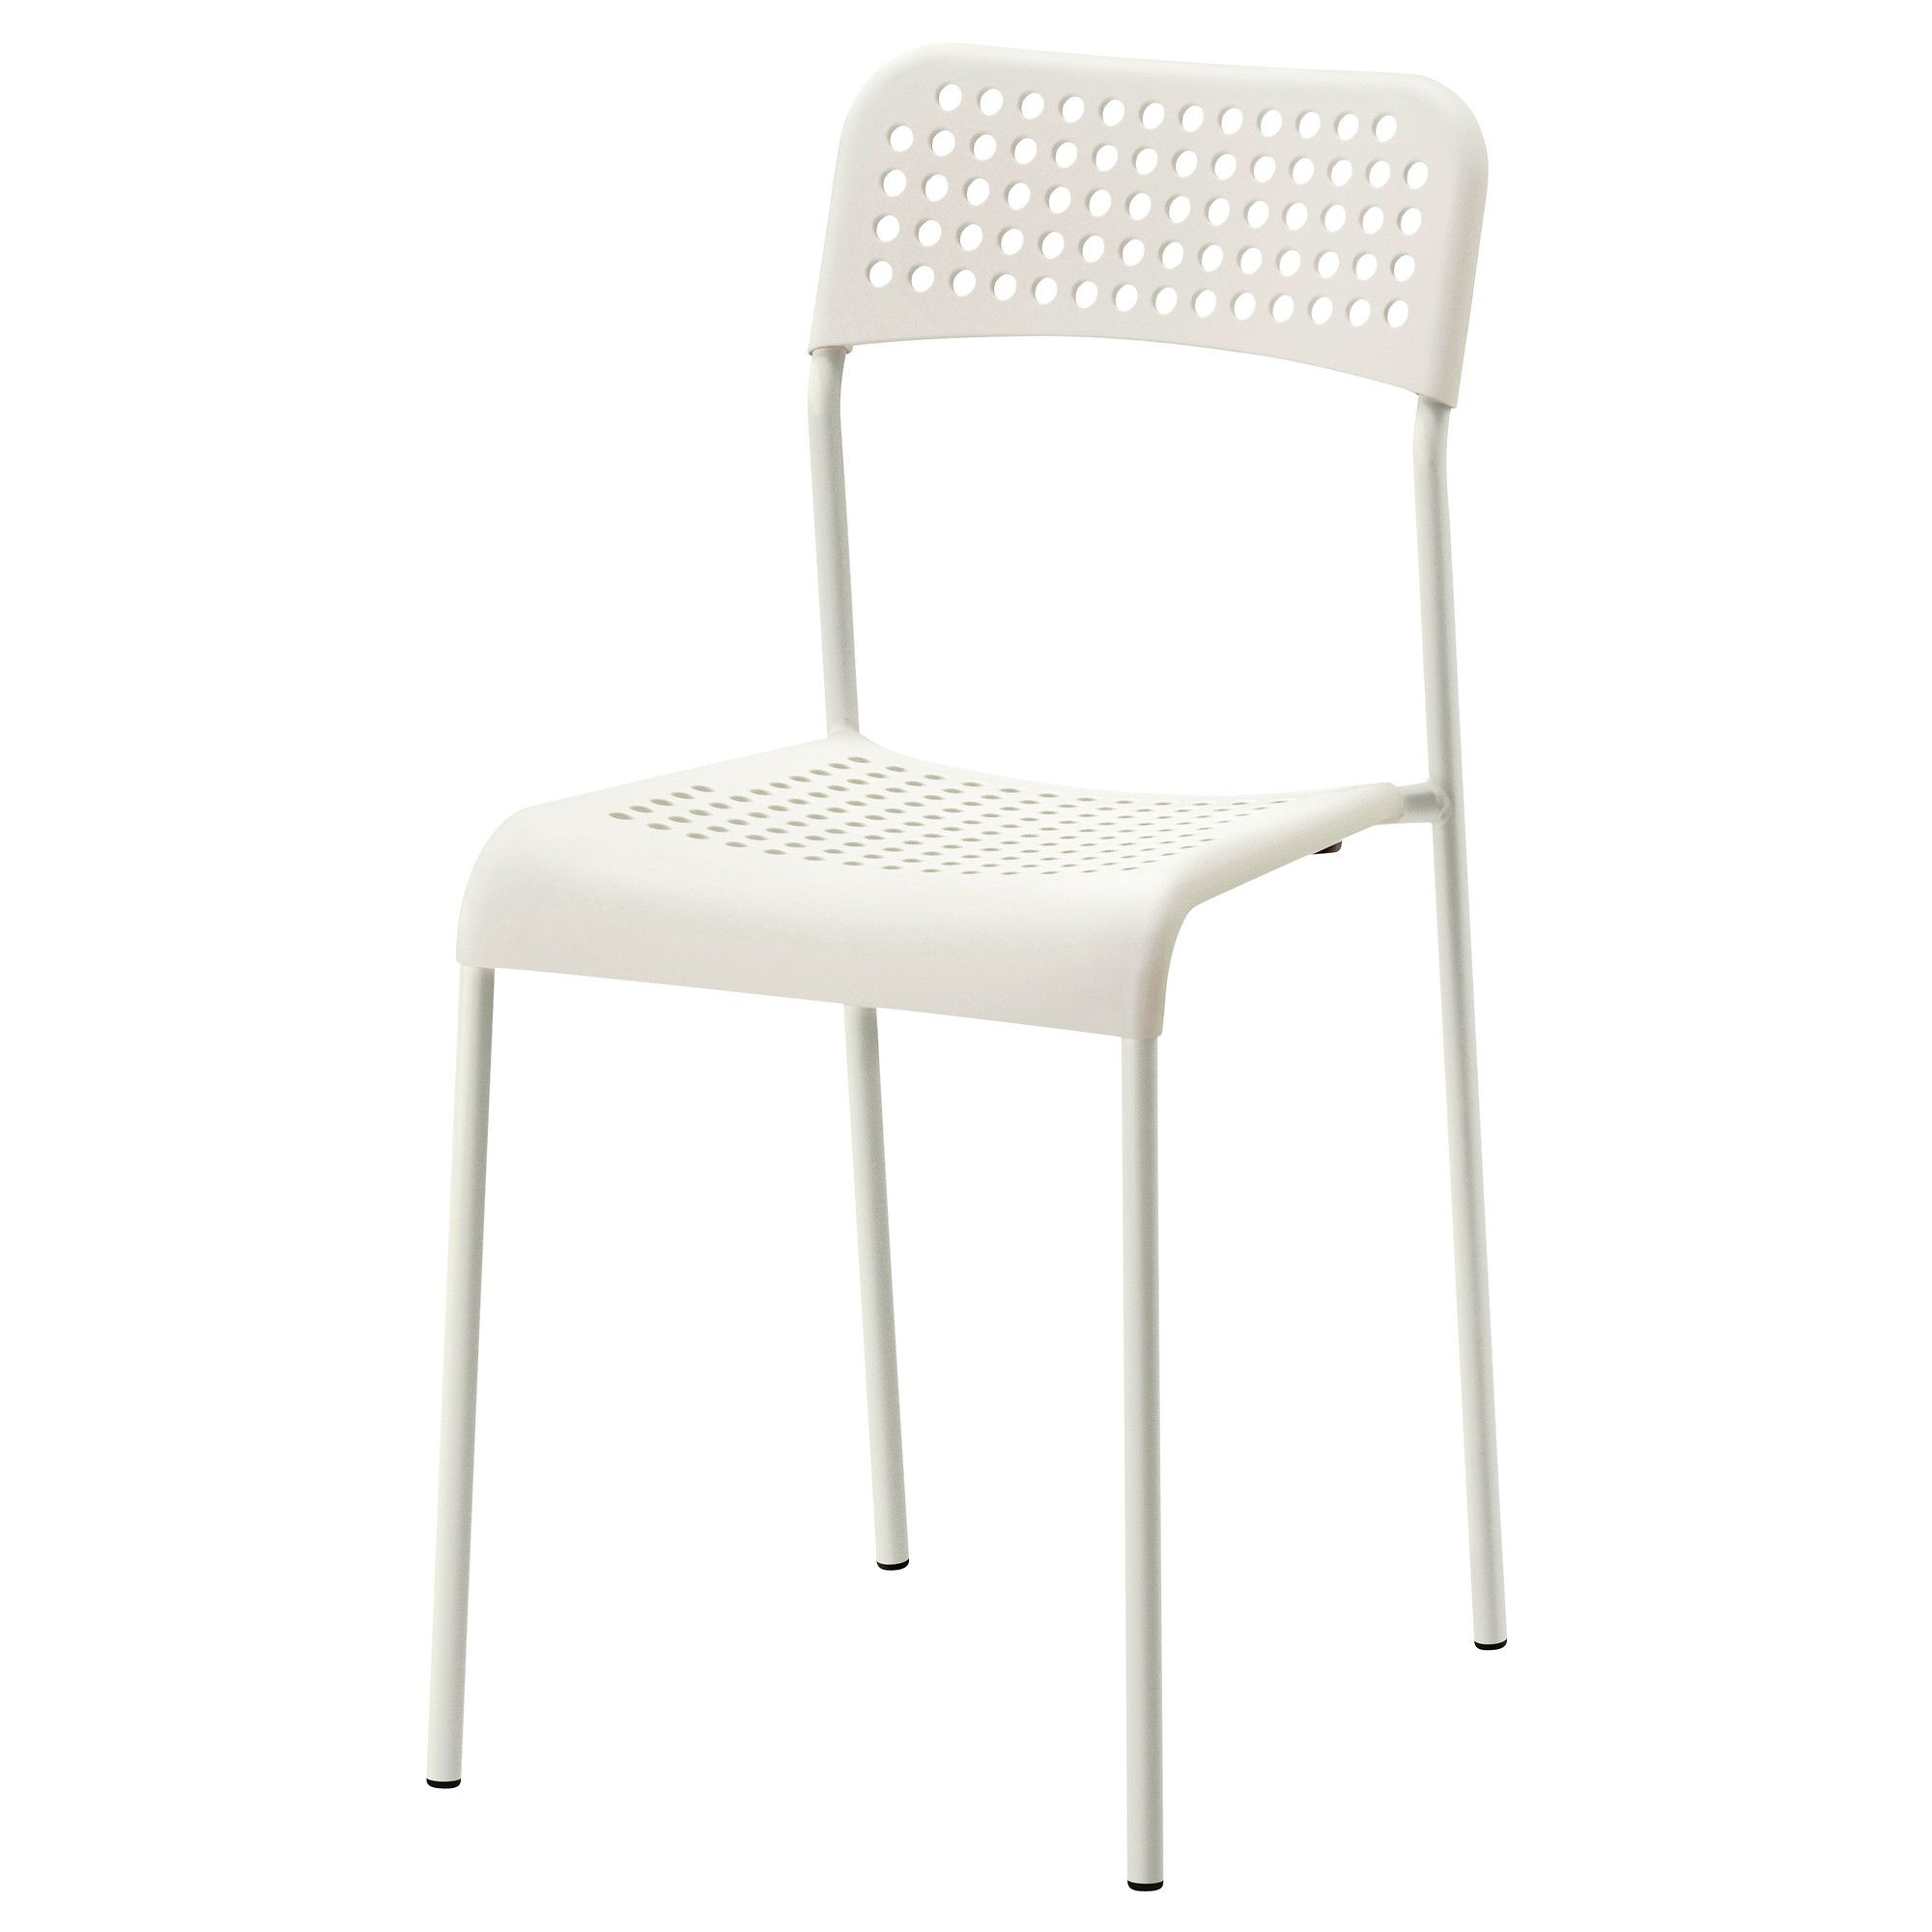 High Quality ADDE Chair, White